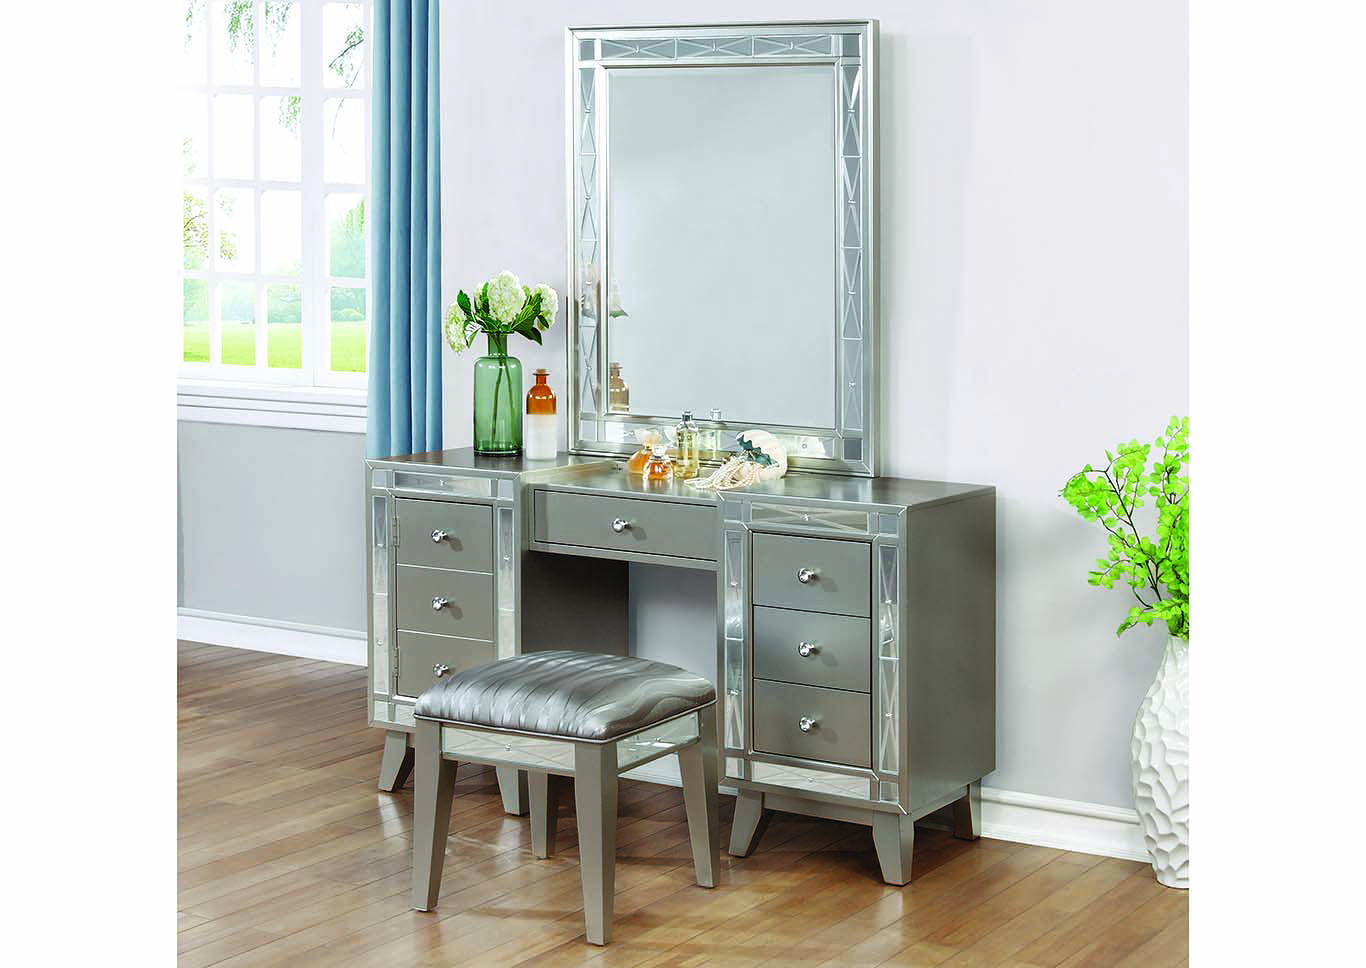 Leighton Metallic Mercury Vanity Desk, Stool & Mirror,Coaster Furniture